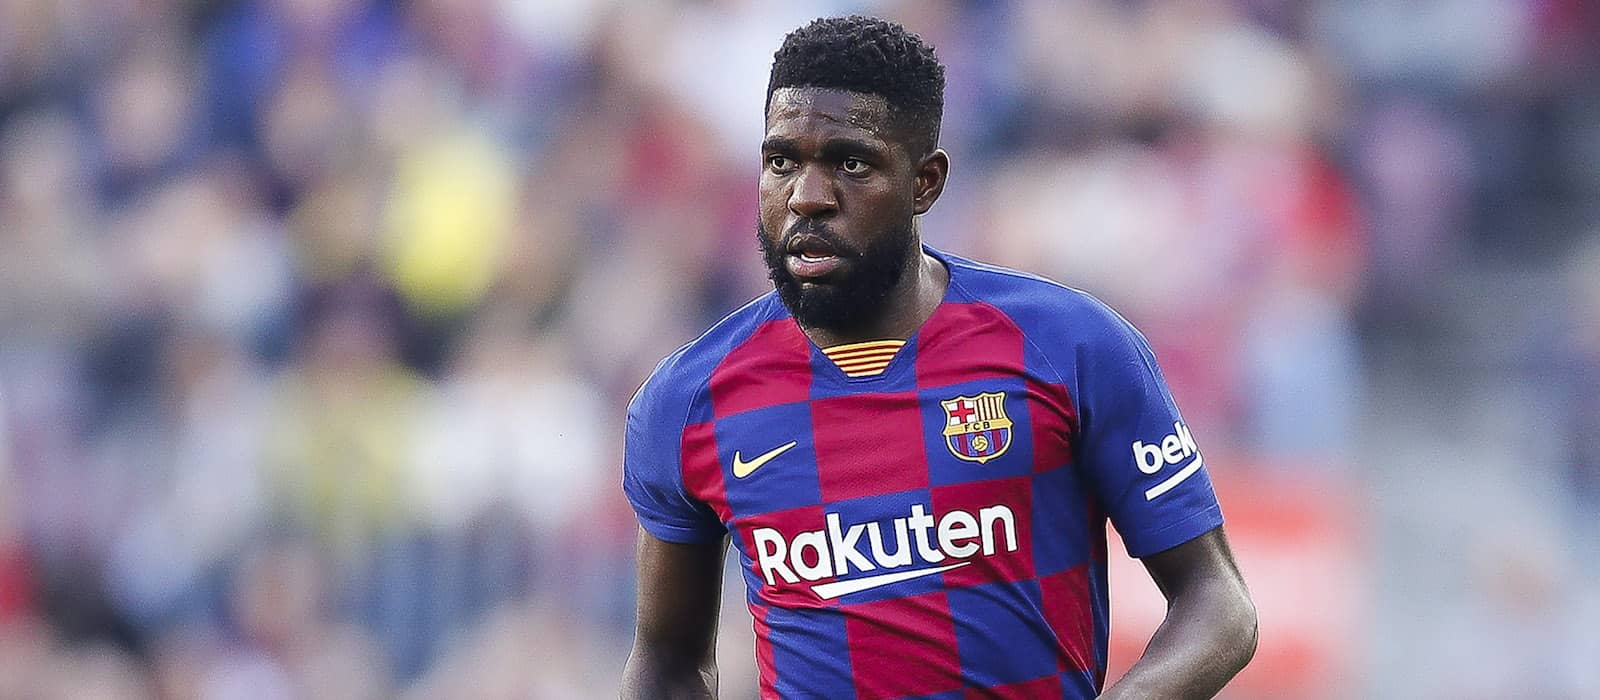 Barcelona could move on Manchester United target Samuel Umtiti